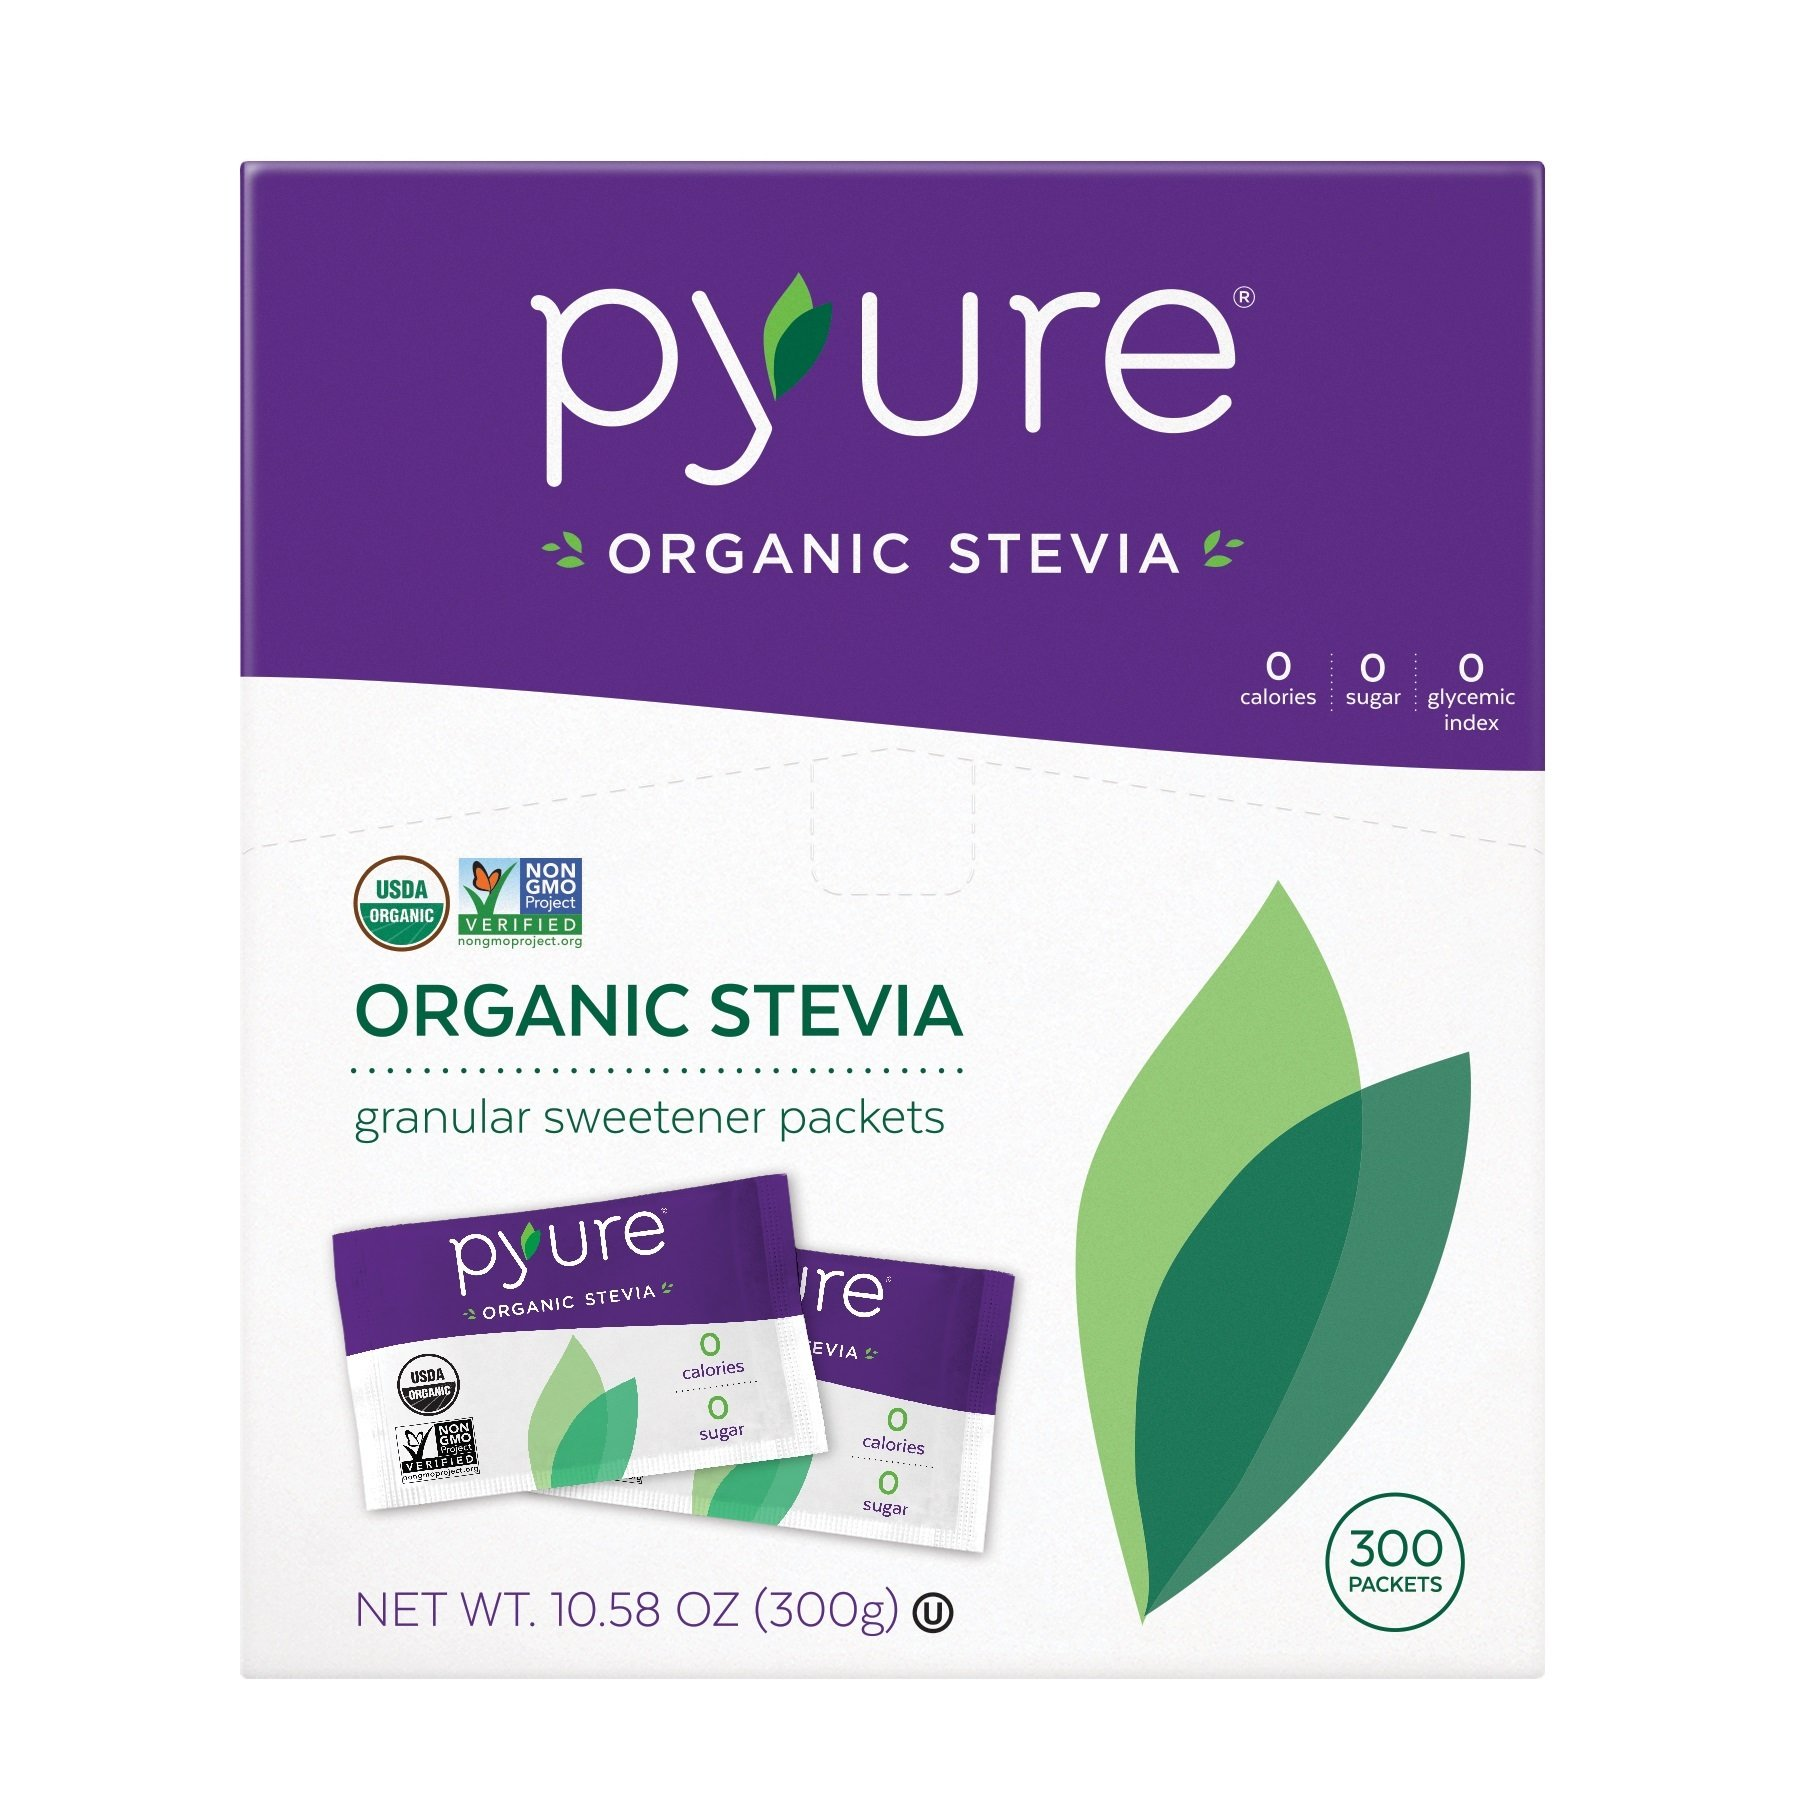 Organic Stevia Sweetener Packets, 0 Calorie, Sugar Substitute, 300Count by Pyure (Image #1)